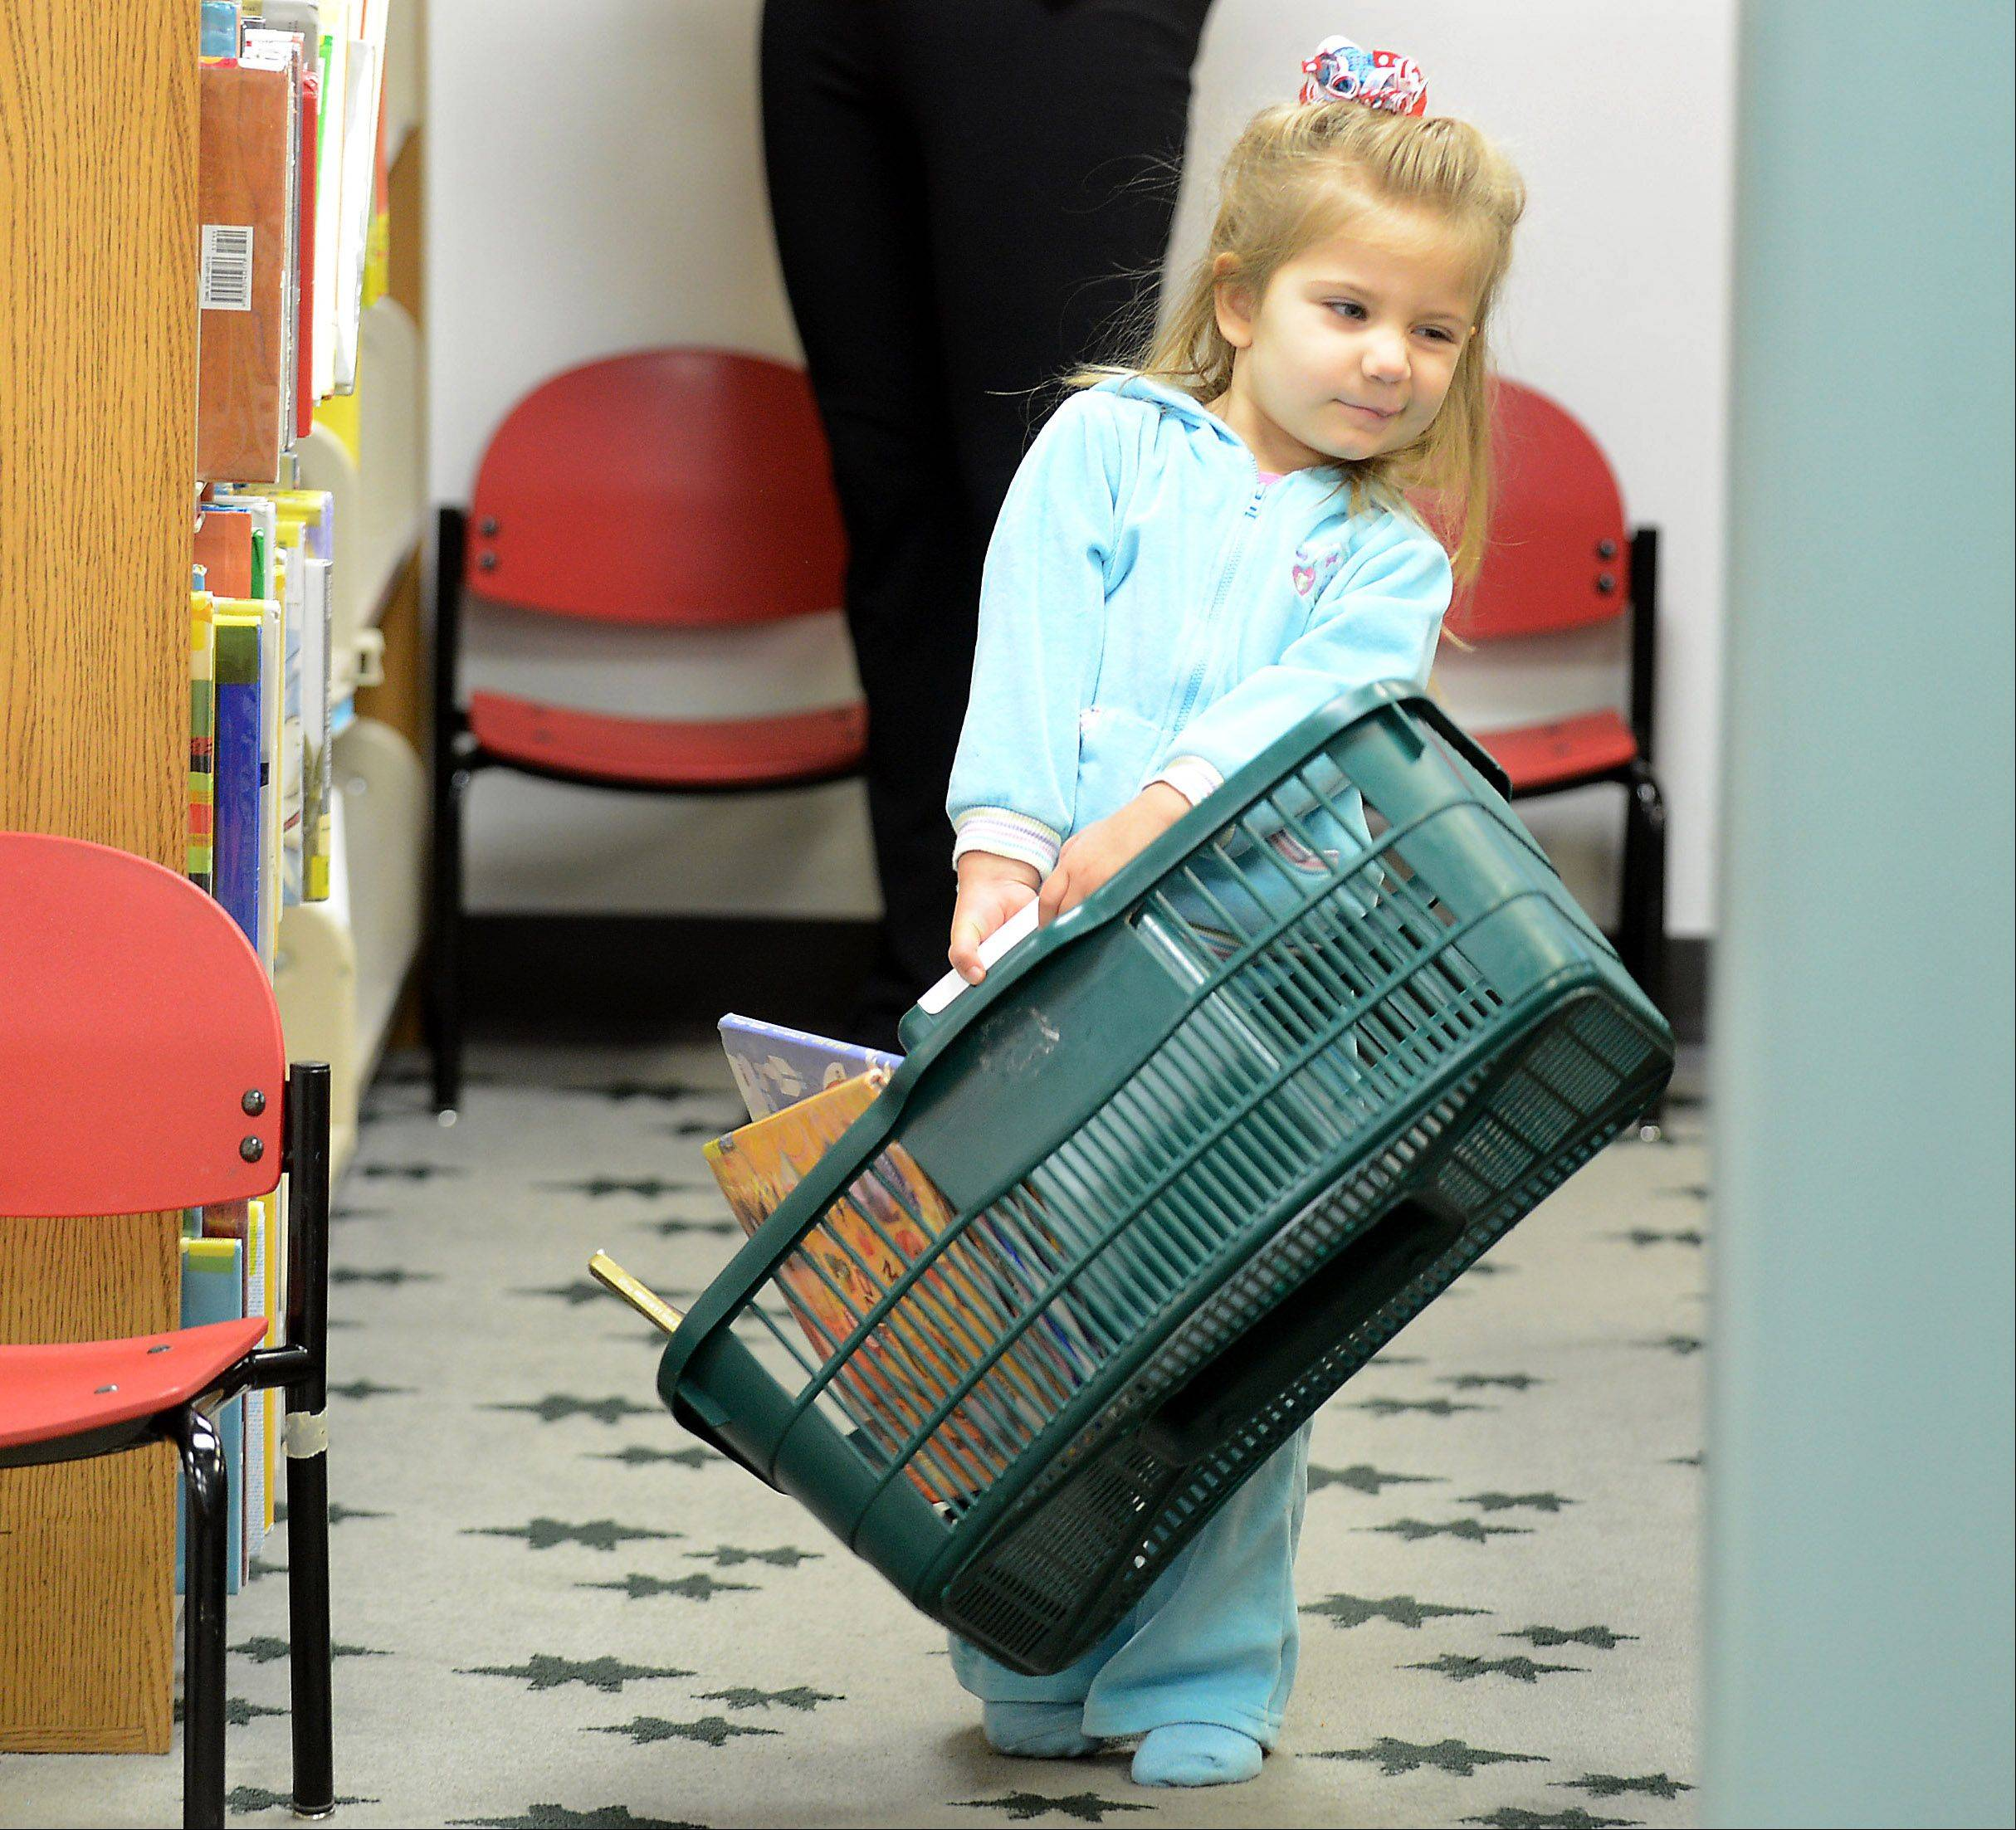 Genevive Sroufek, 3, of Geneva struggles to tote a basket of books while looking for things to check out Monday at the Geneva Public Library. Her mom told her she could get three books and she had it whittled down to 12 at the time.